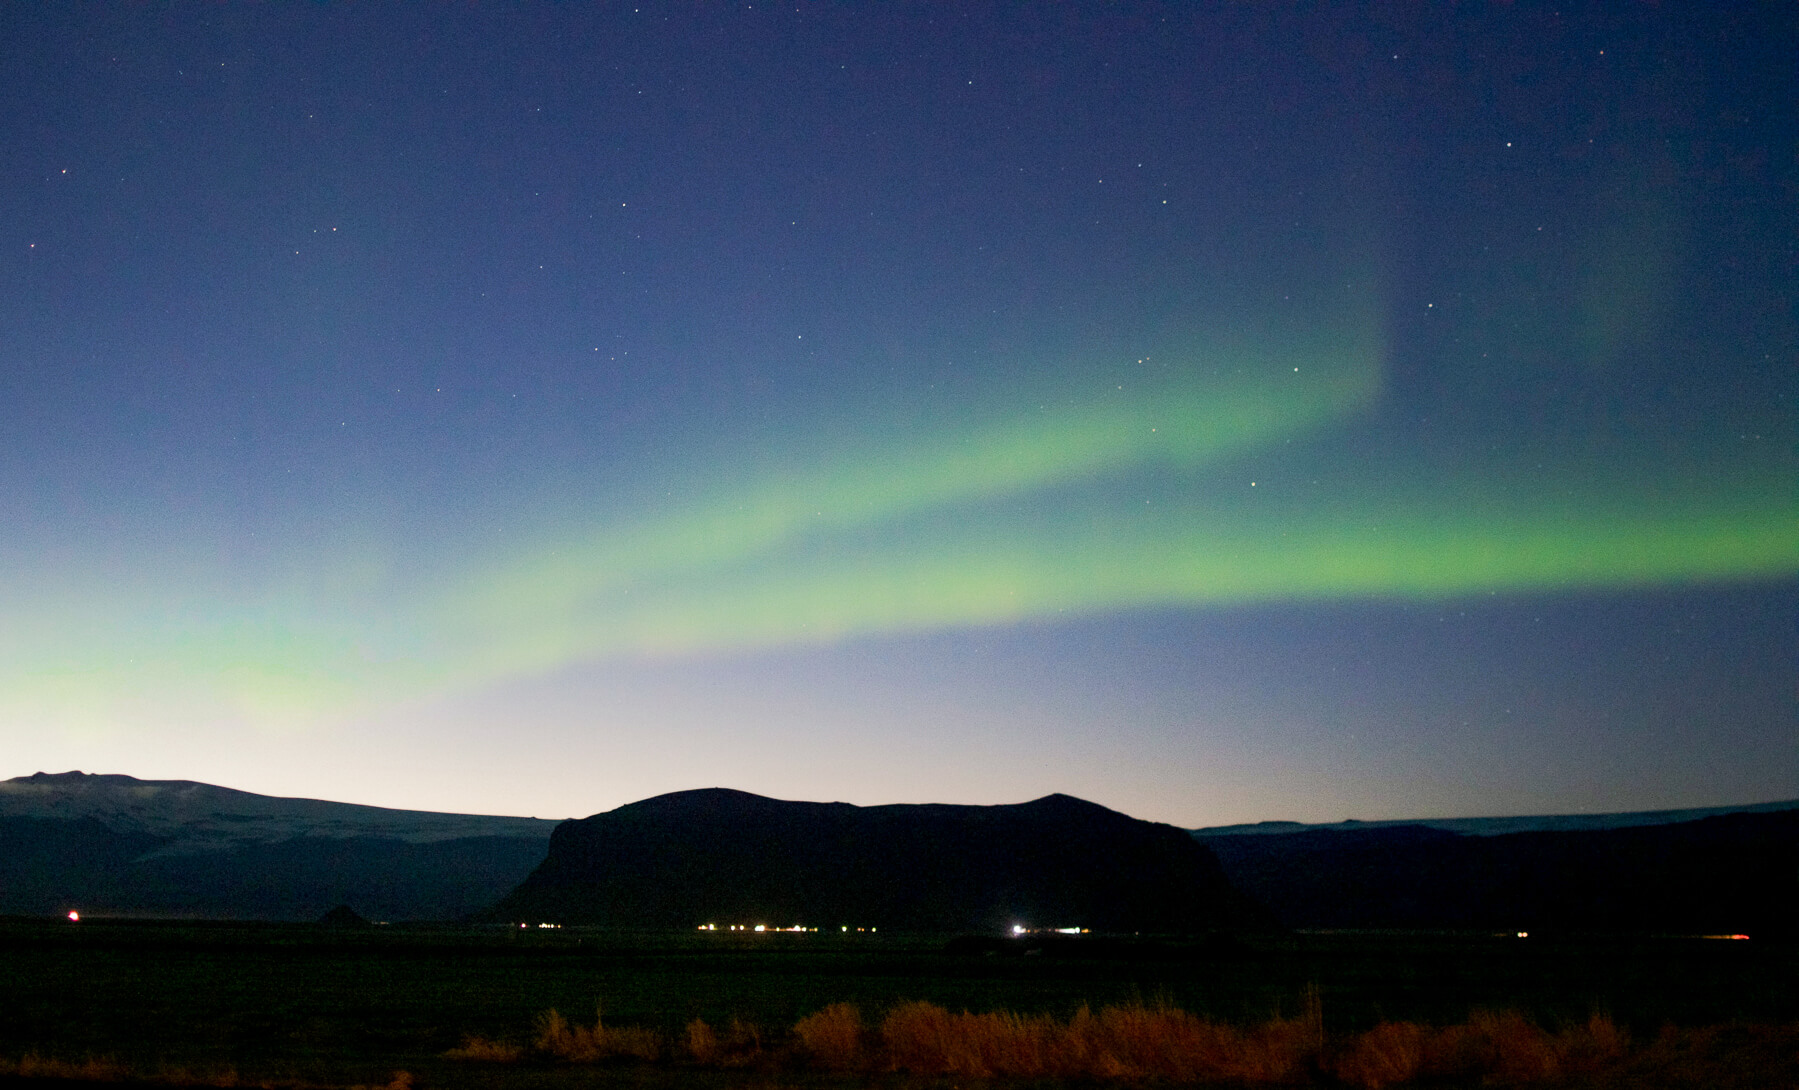 Thin stream of Northern Lights running across the sky above mountains and a distant town